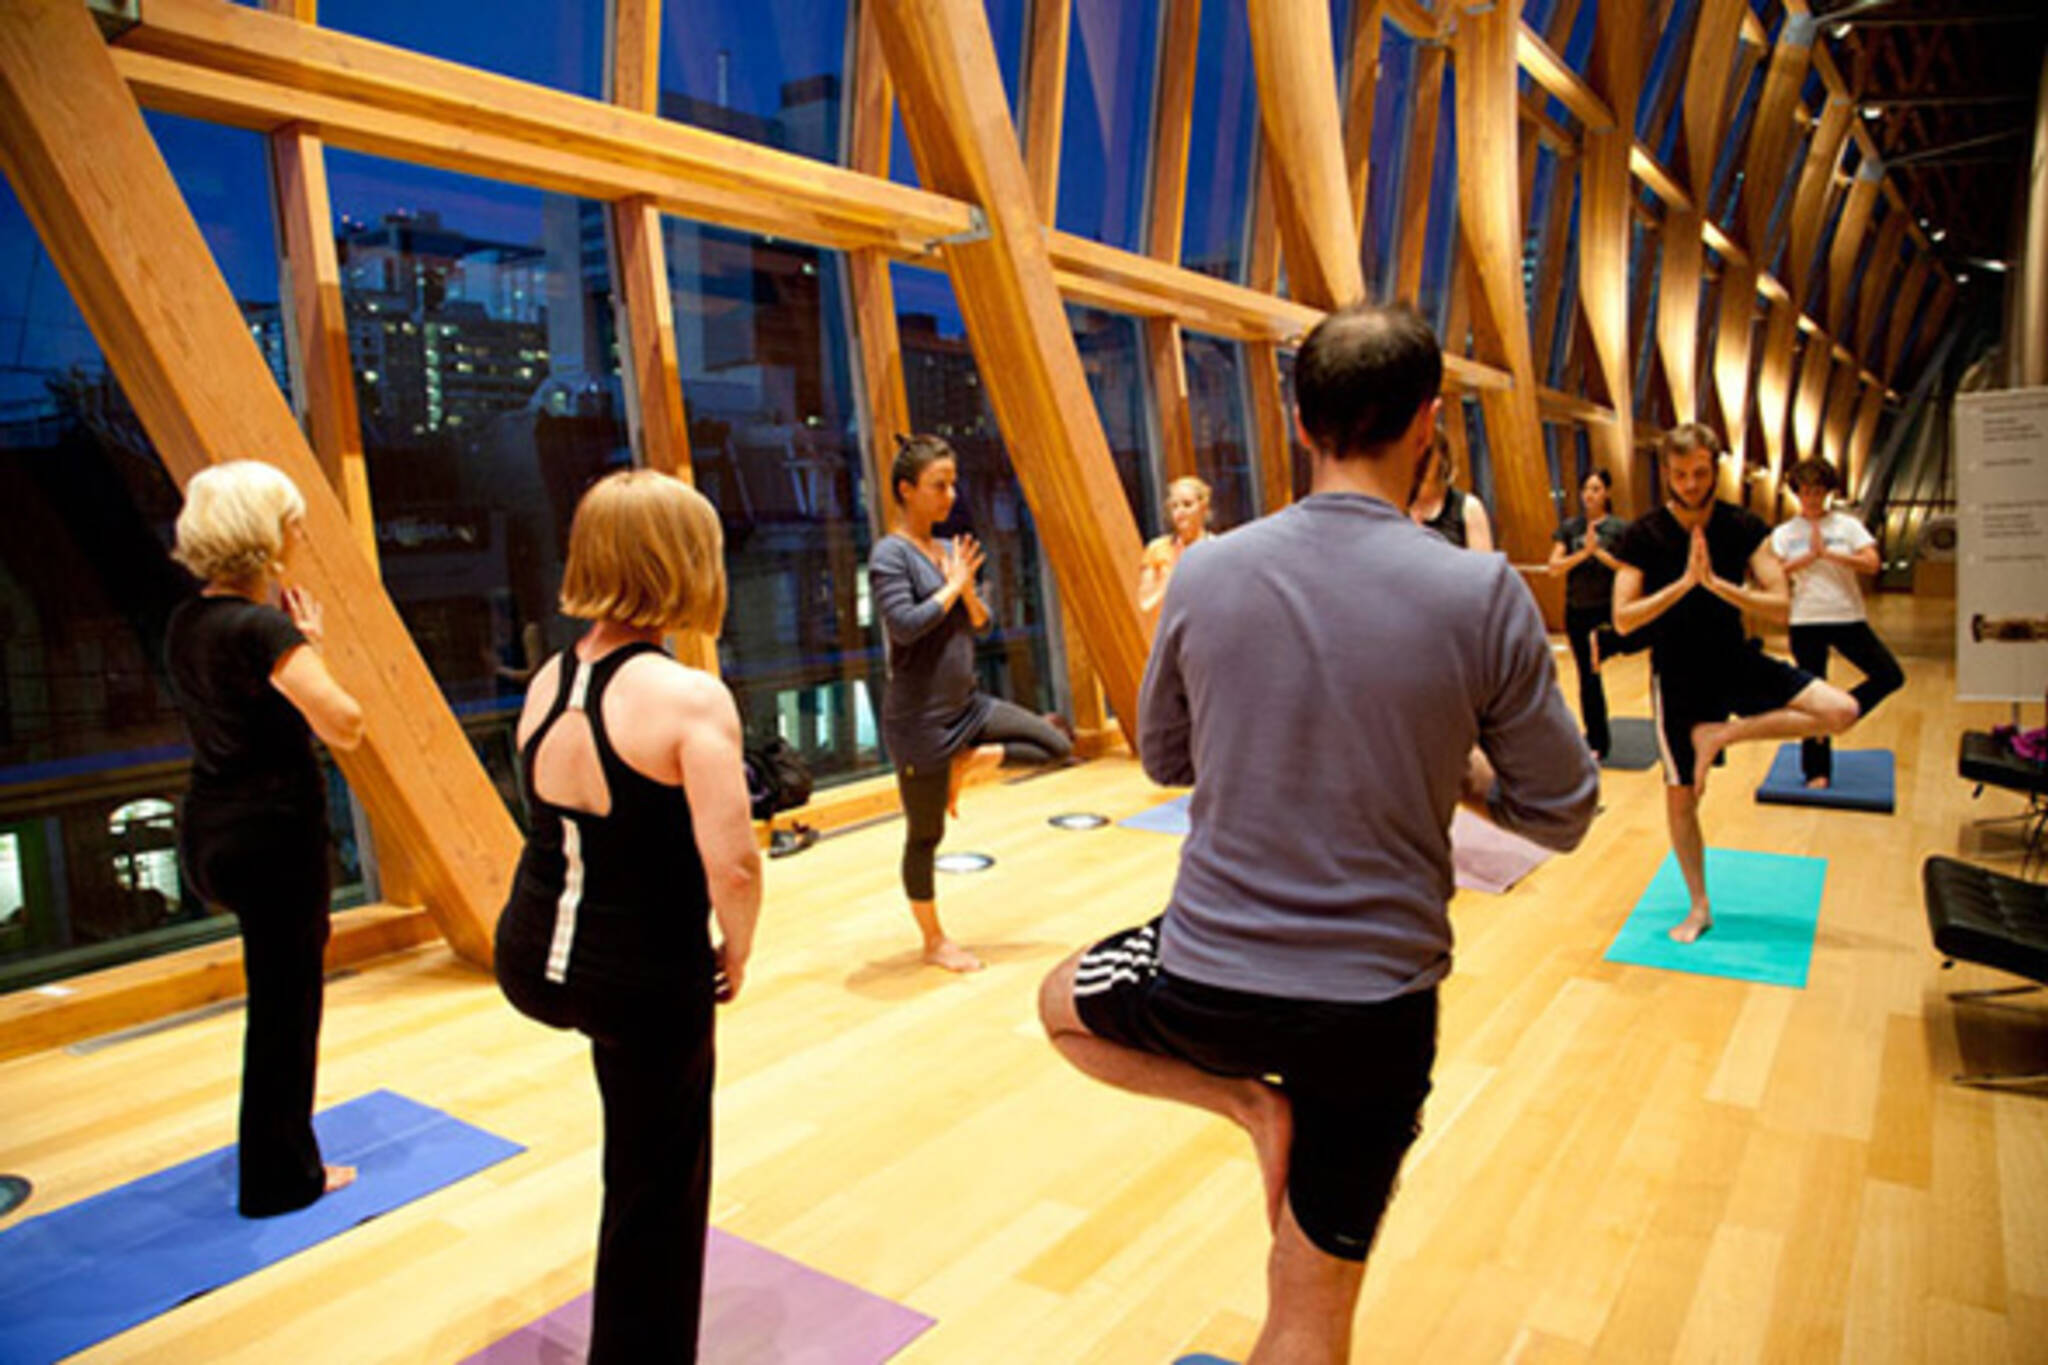 The Top 5 Unusual Places To Do Yoga In Toronto